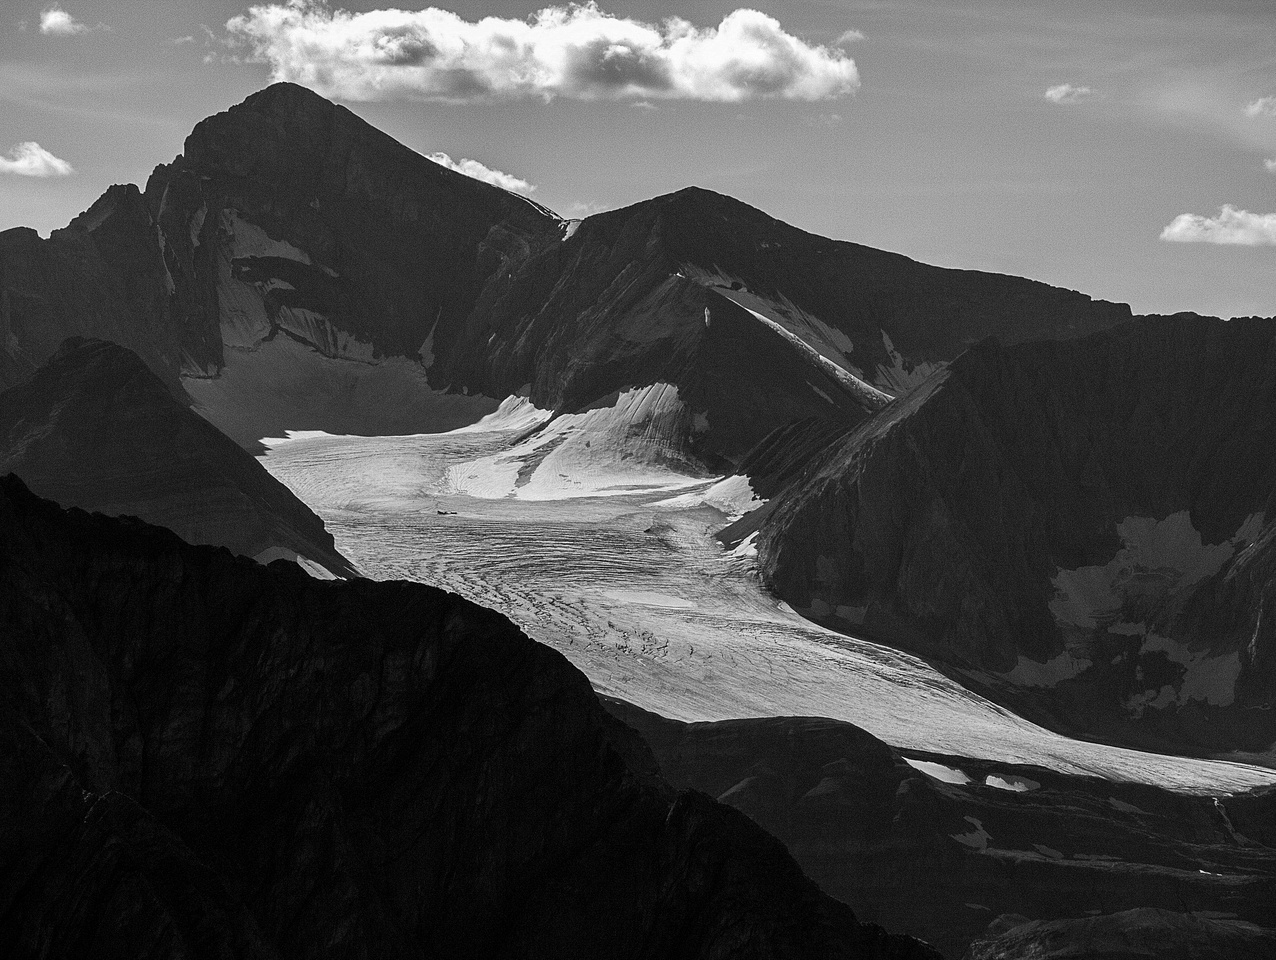 Looking up the Nivelle Glacier at Mount Joffre.